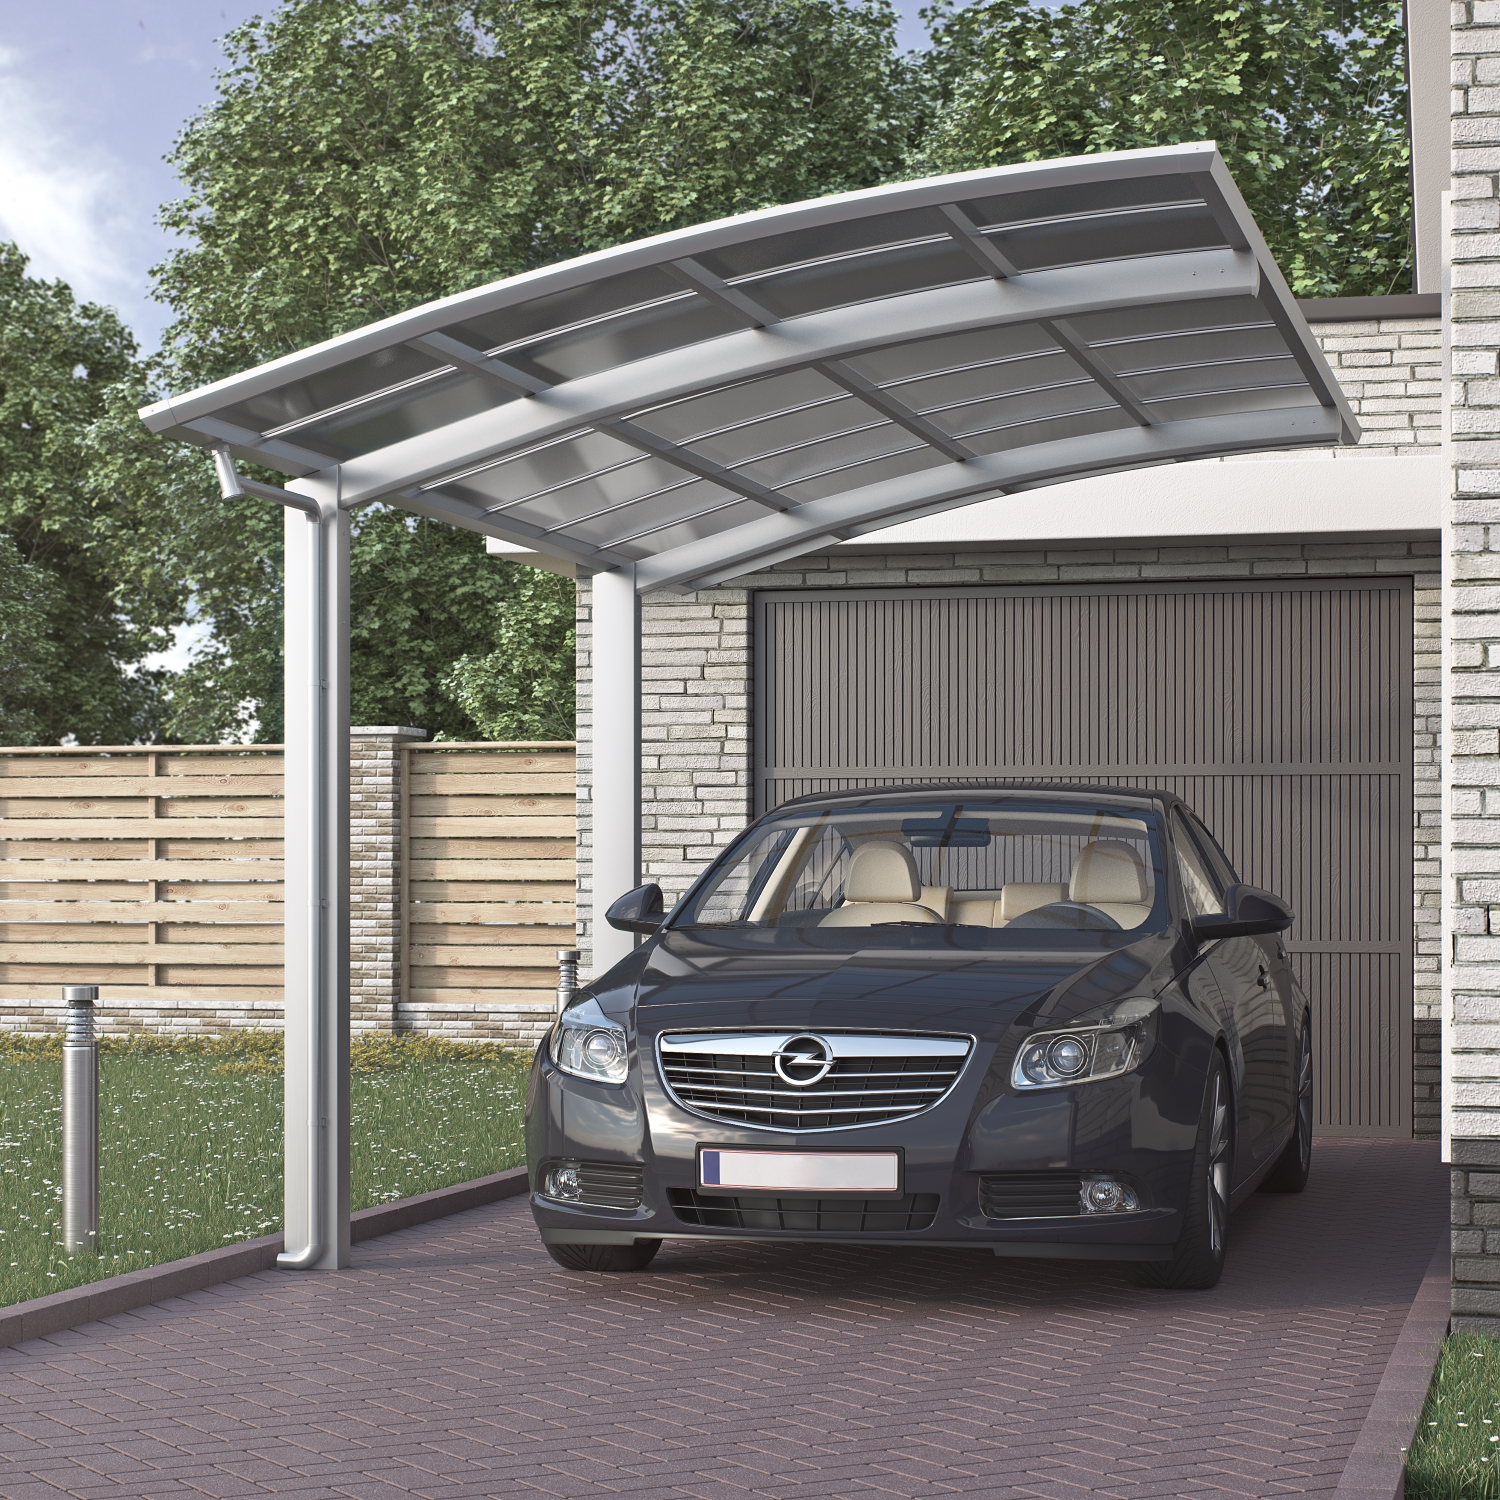 doppelcarport bogendach garage unterstand aluminium carport bausatz satteldach ebay. Black Bedroom Furniture Sets. Home Design Ideas